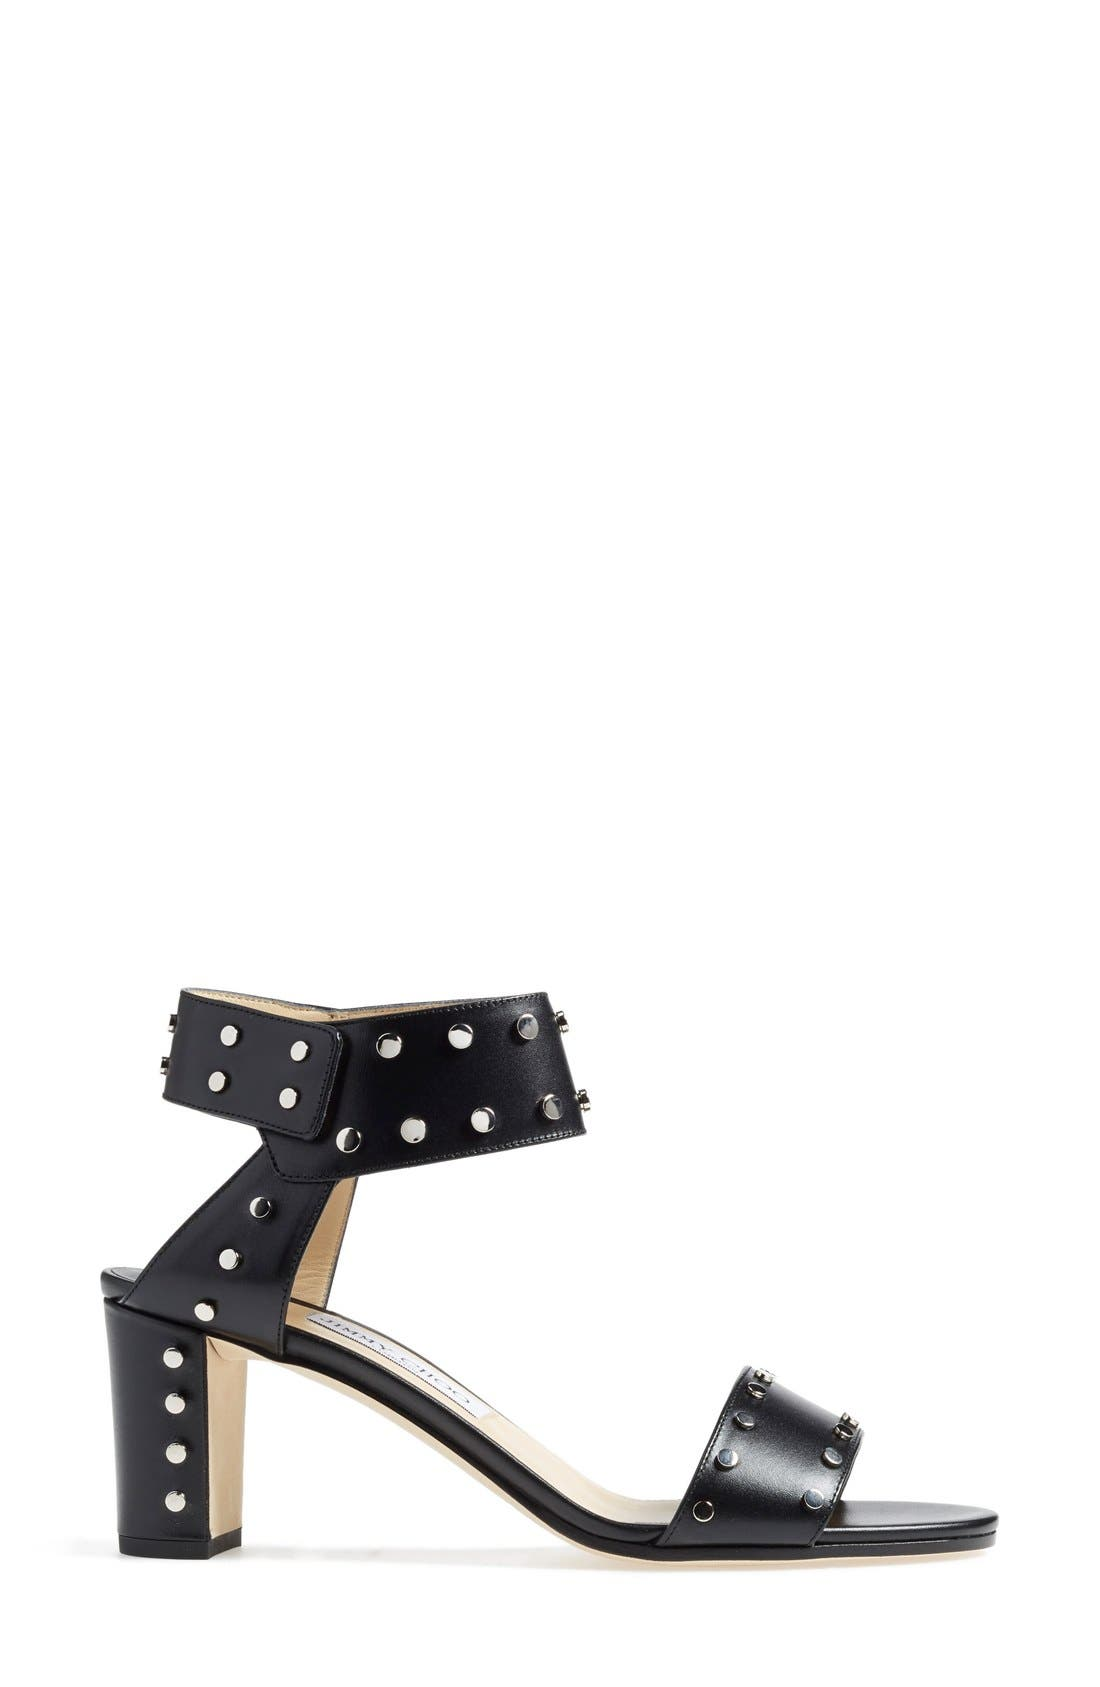 'Veto' Studded Sandal,                             Alternate thumbnail 4, color,                             001